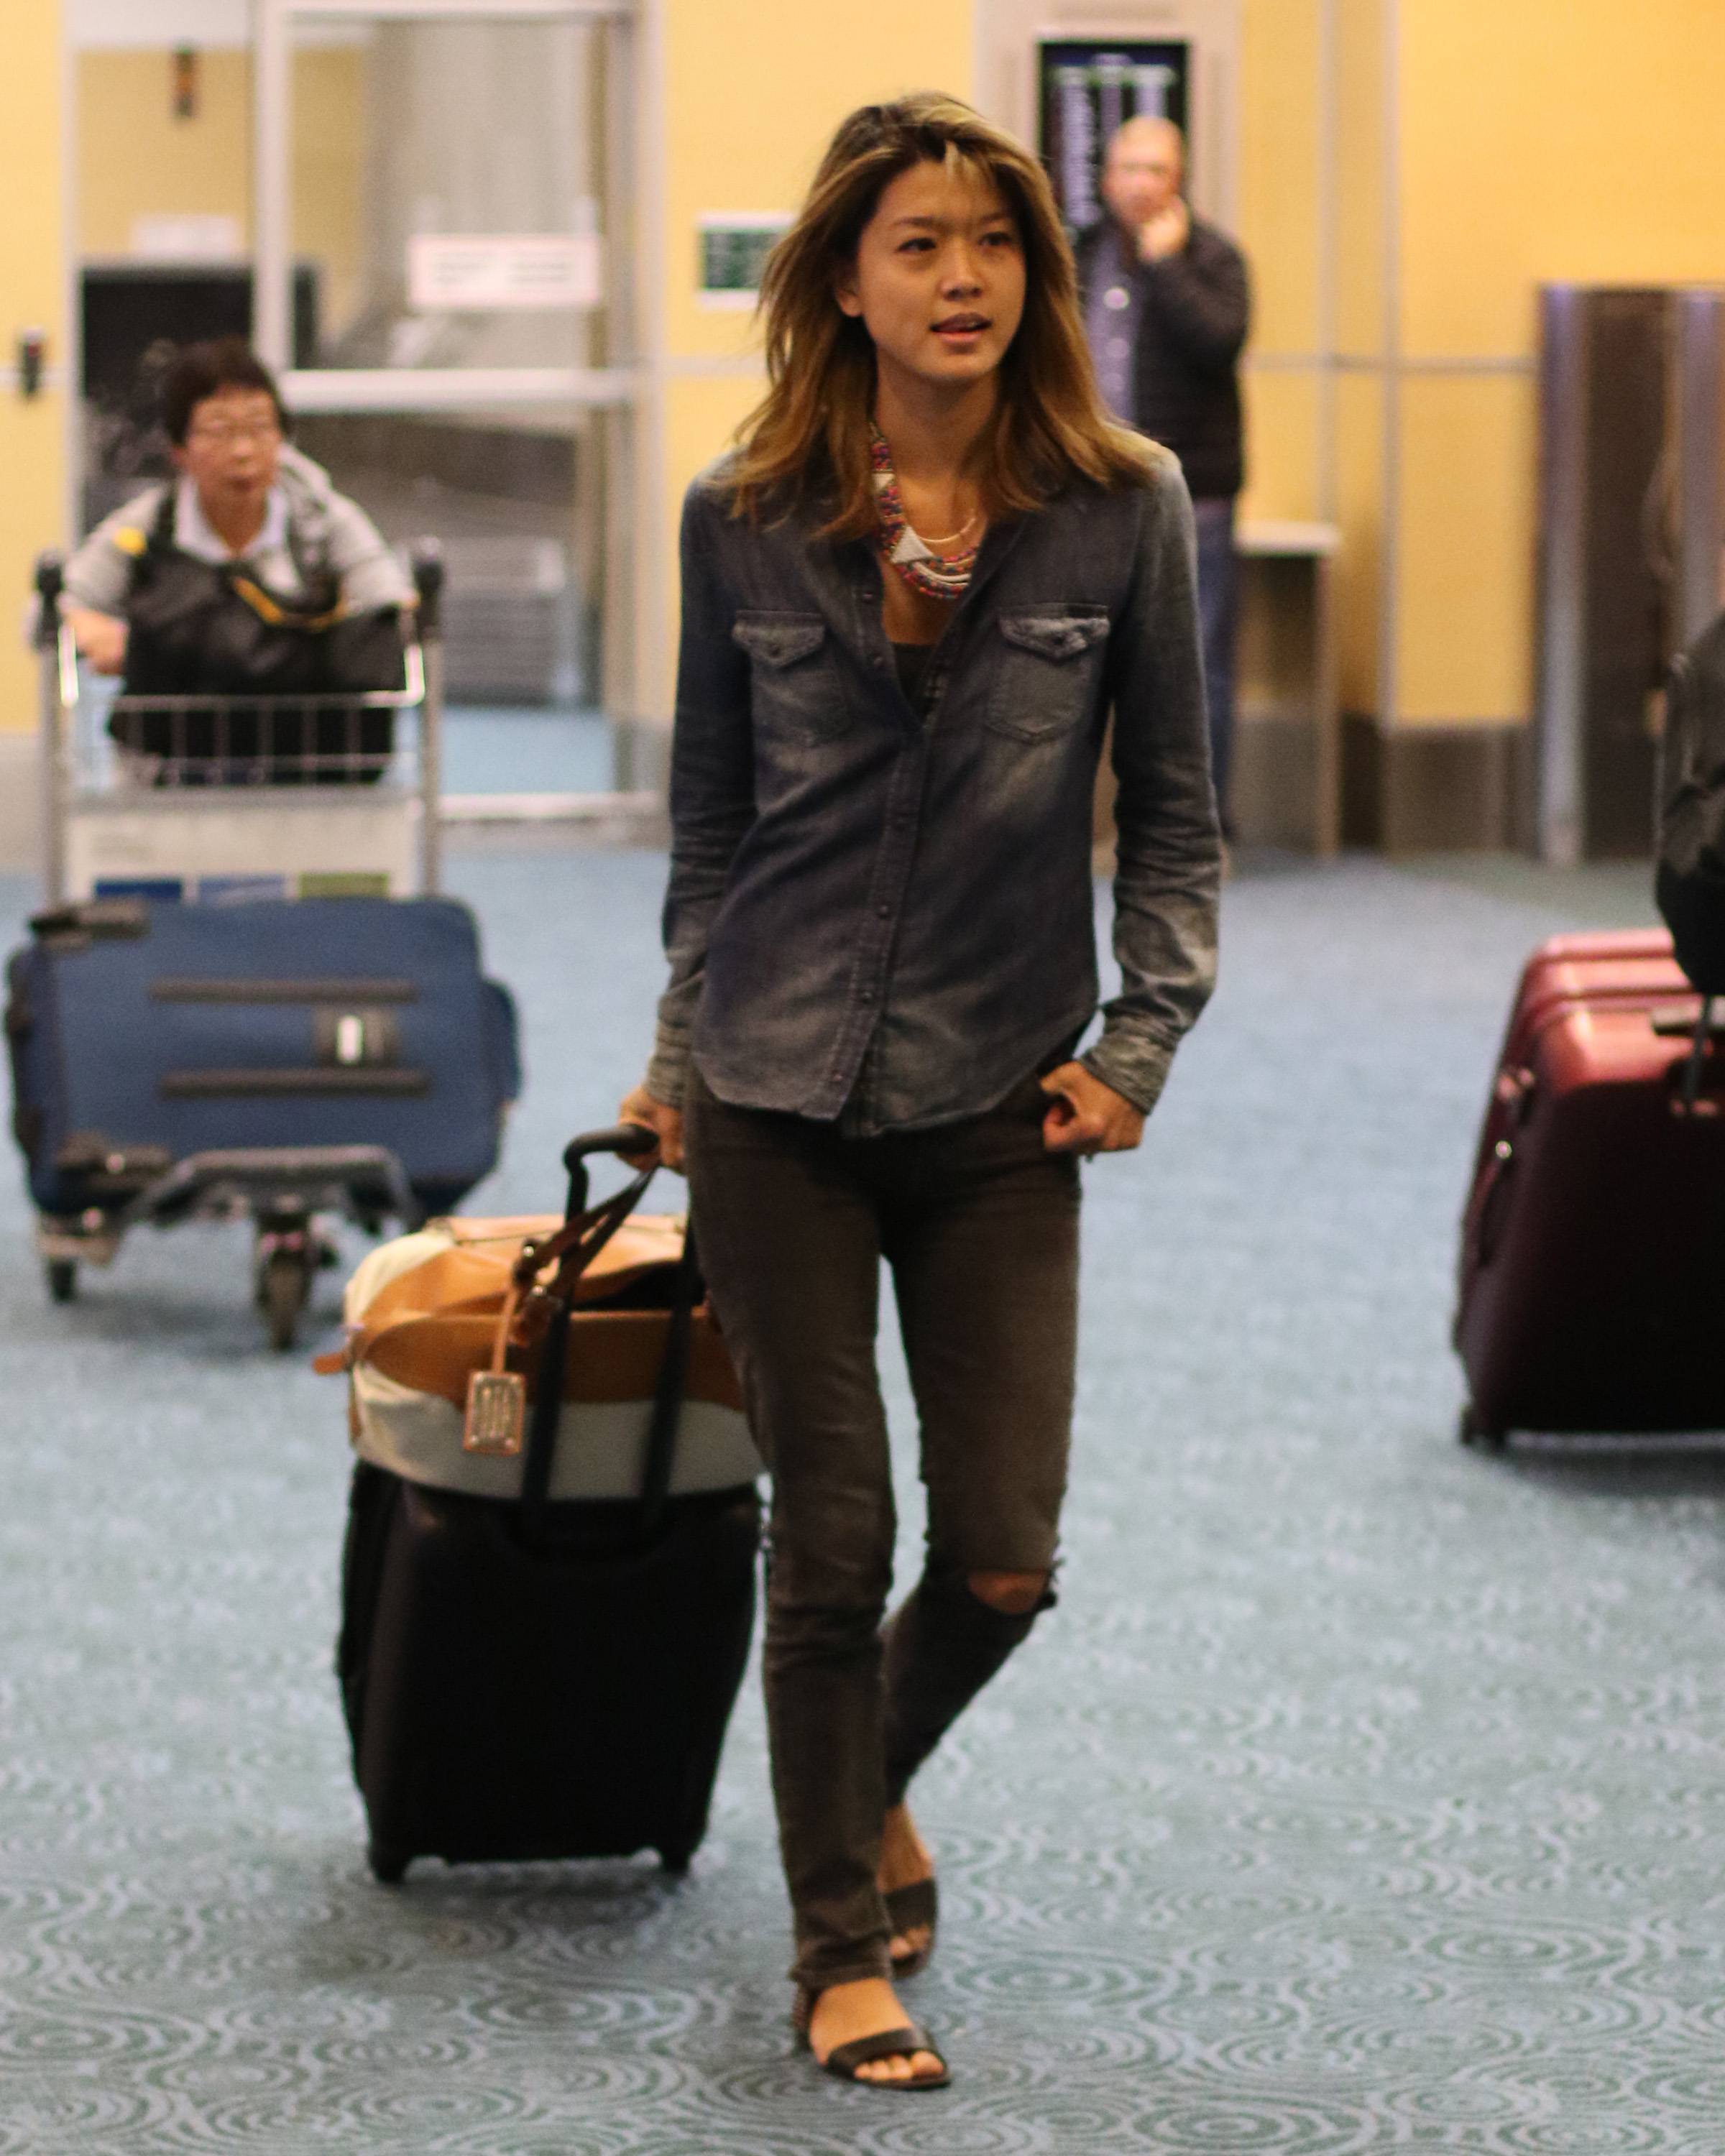 Honda North Hollywood >> Grace Park spotted in Vancouver (PHOTOS) | Daily Hive ...